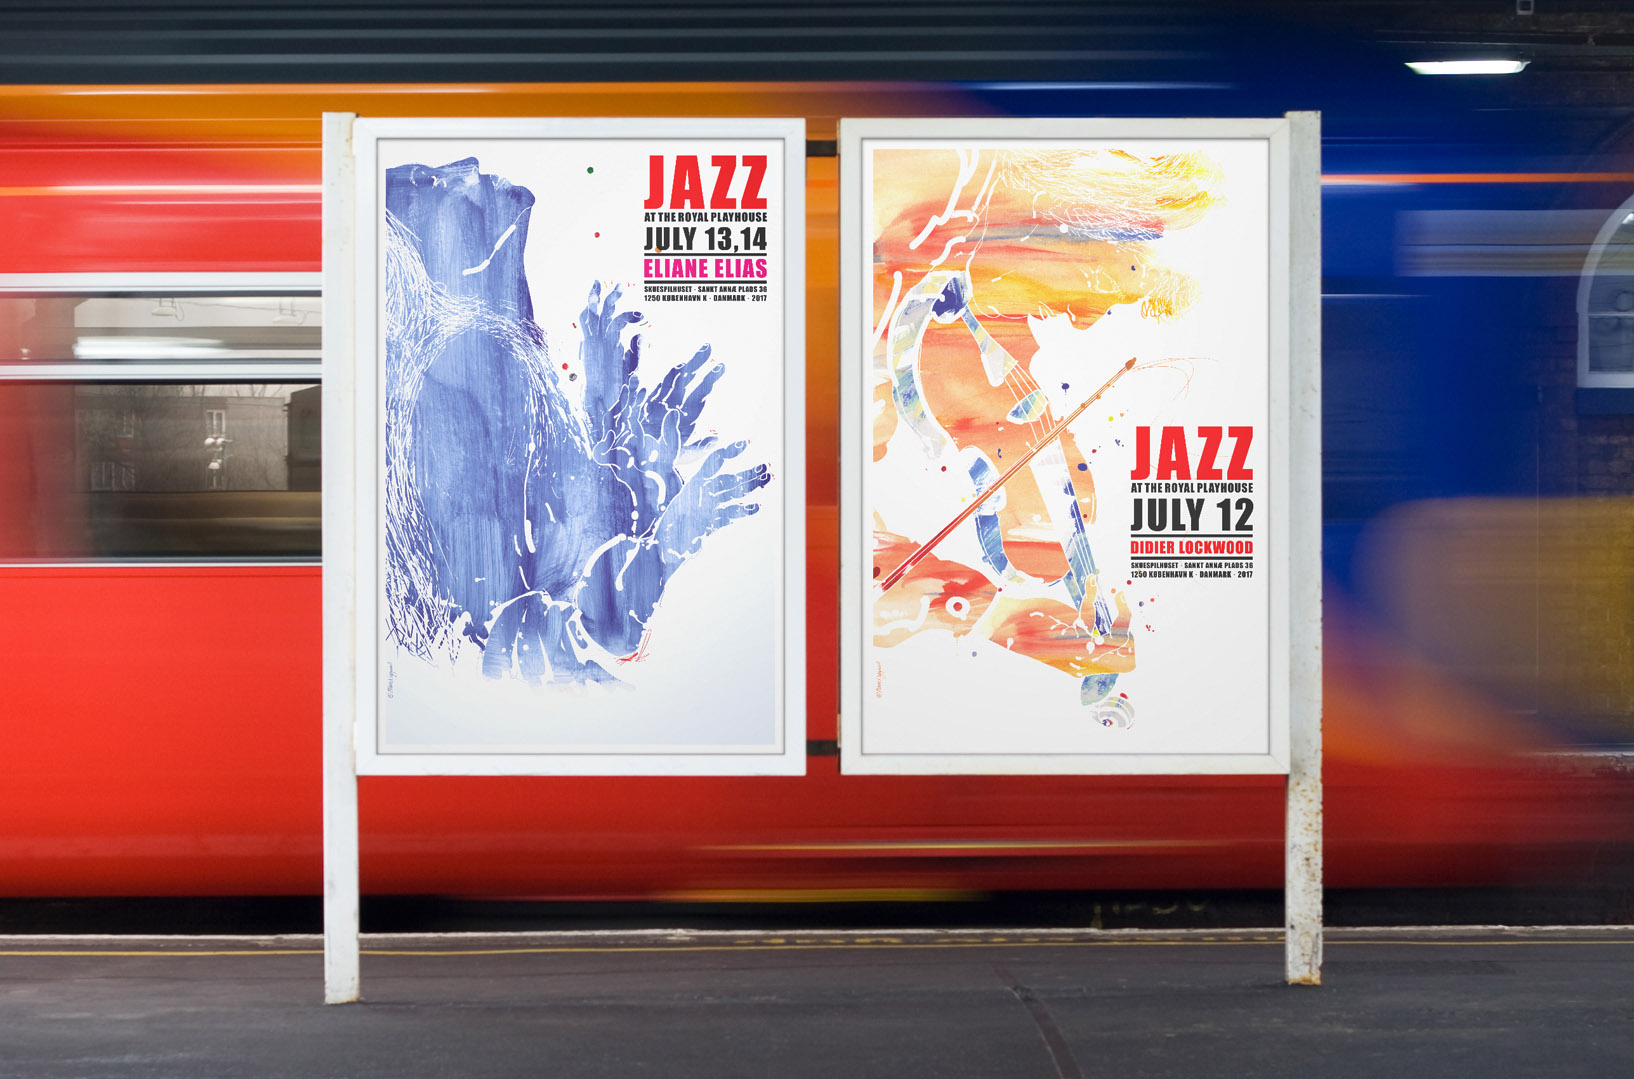 Jazz at The Royal Playhouse